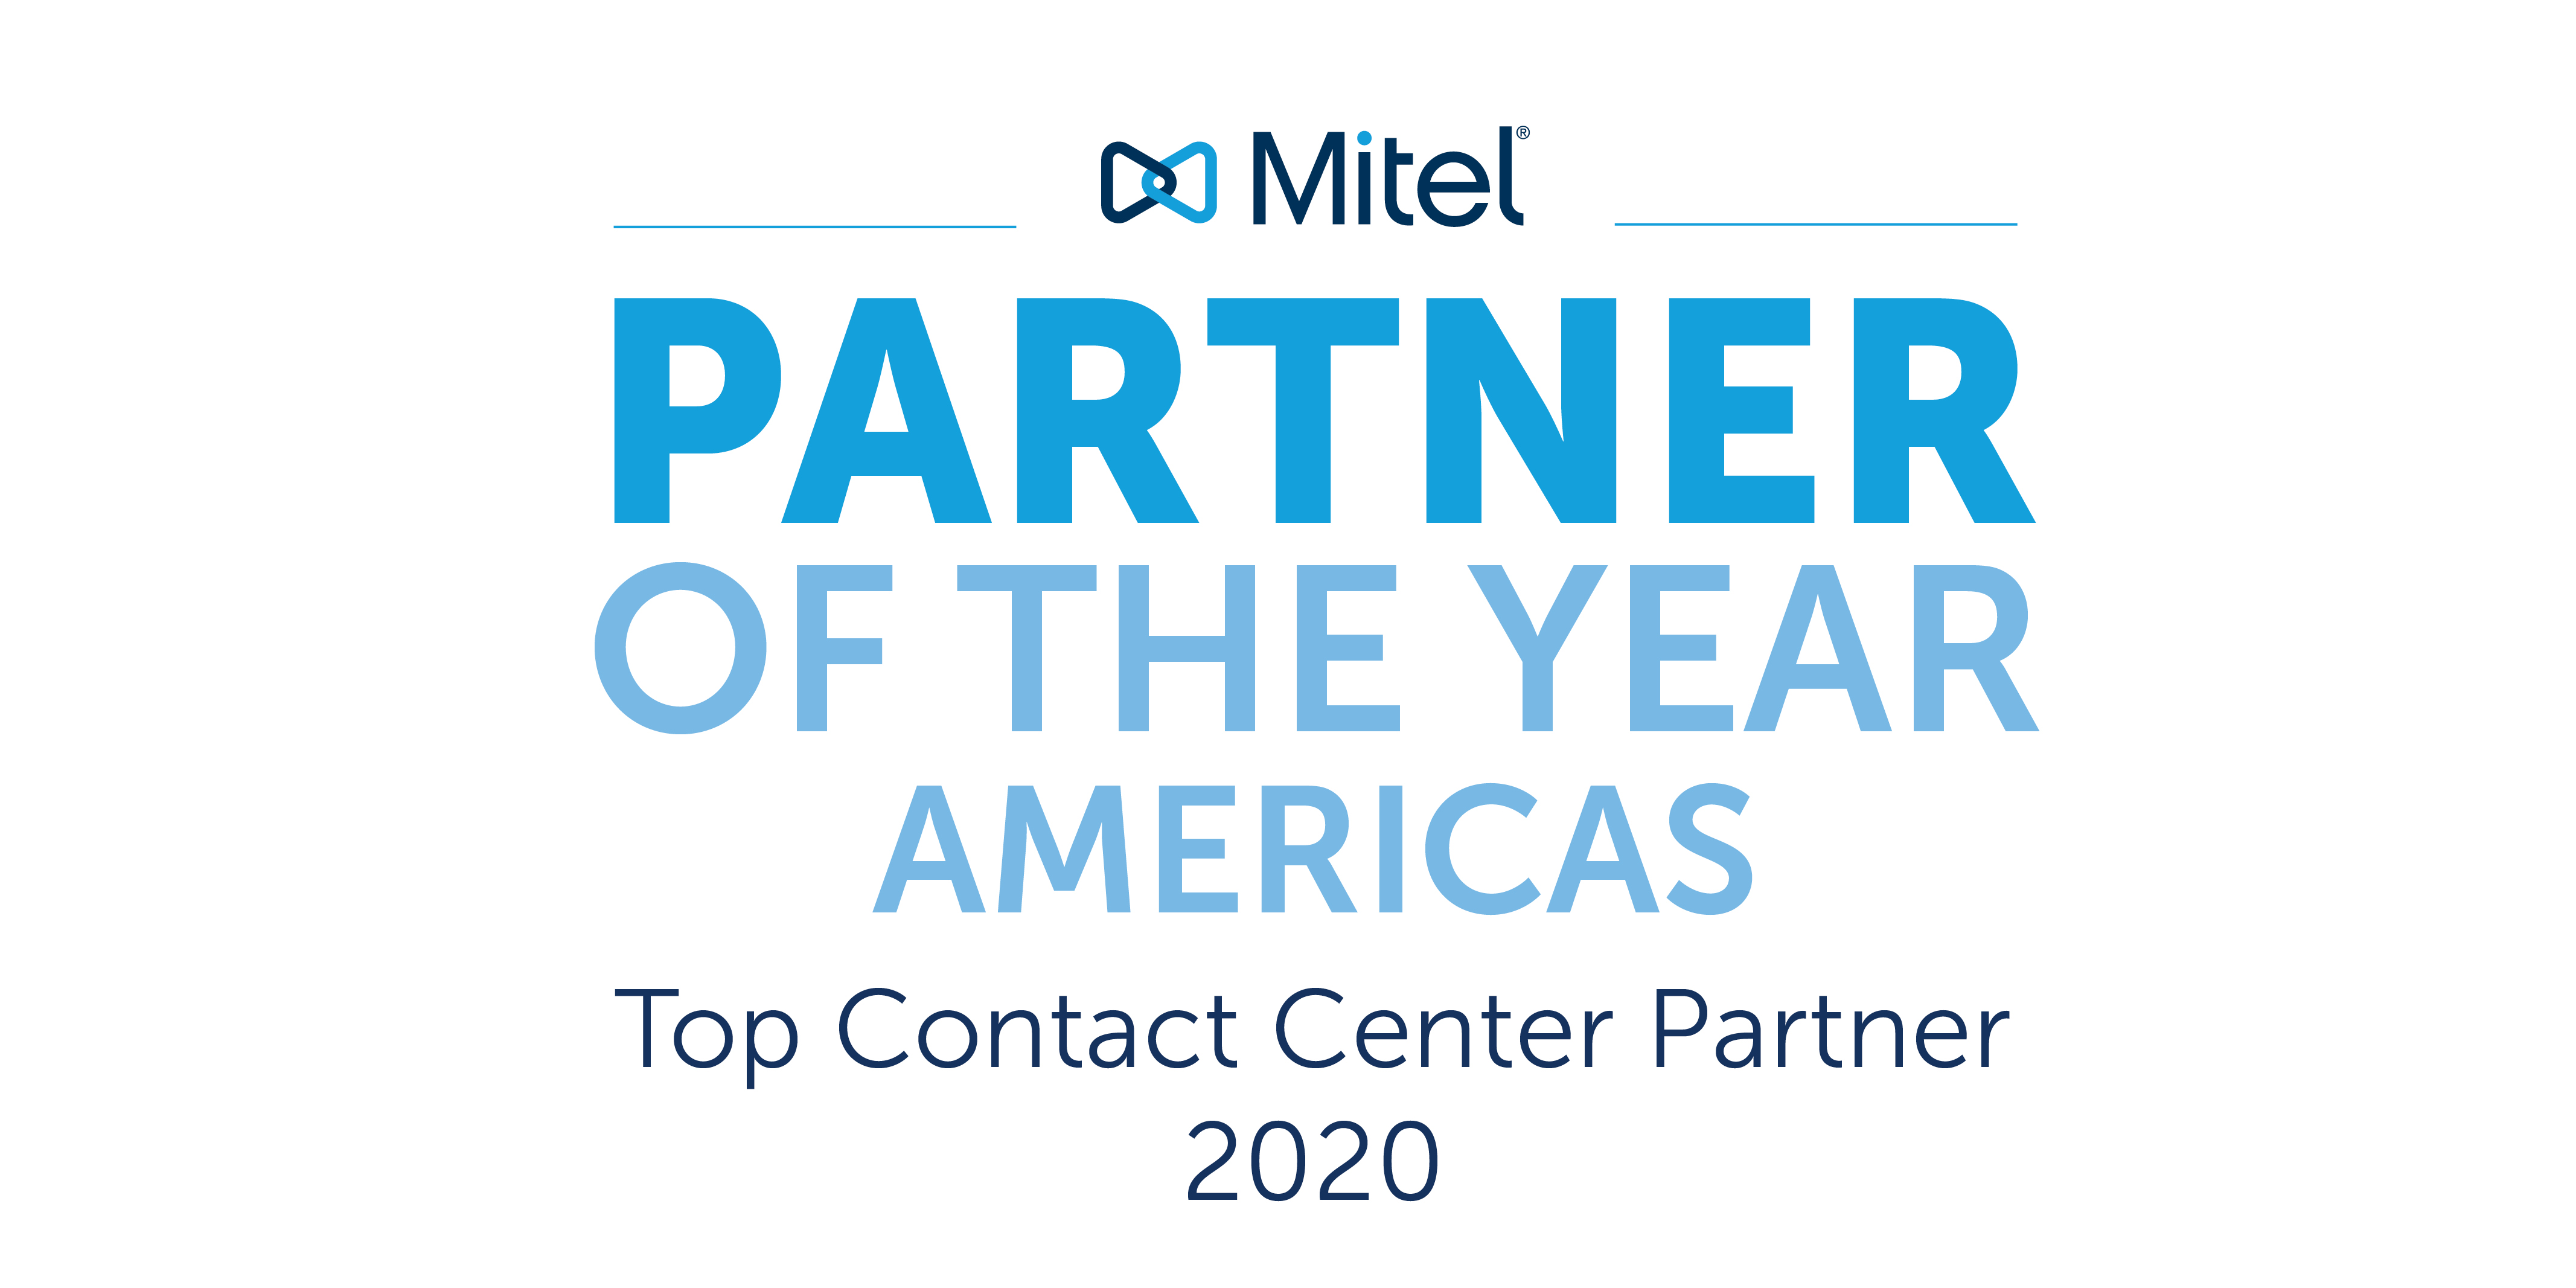 Partner of the Year Americas - Top Government and Top Contact Center Partner 2020